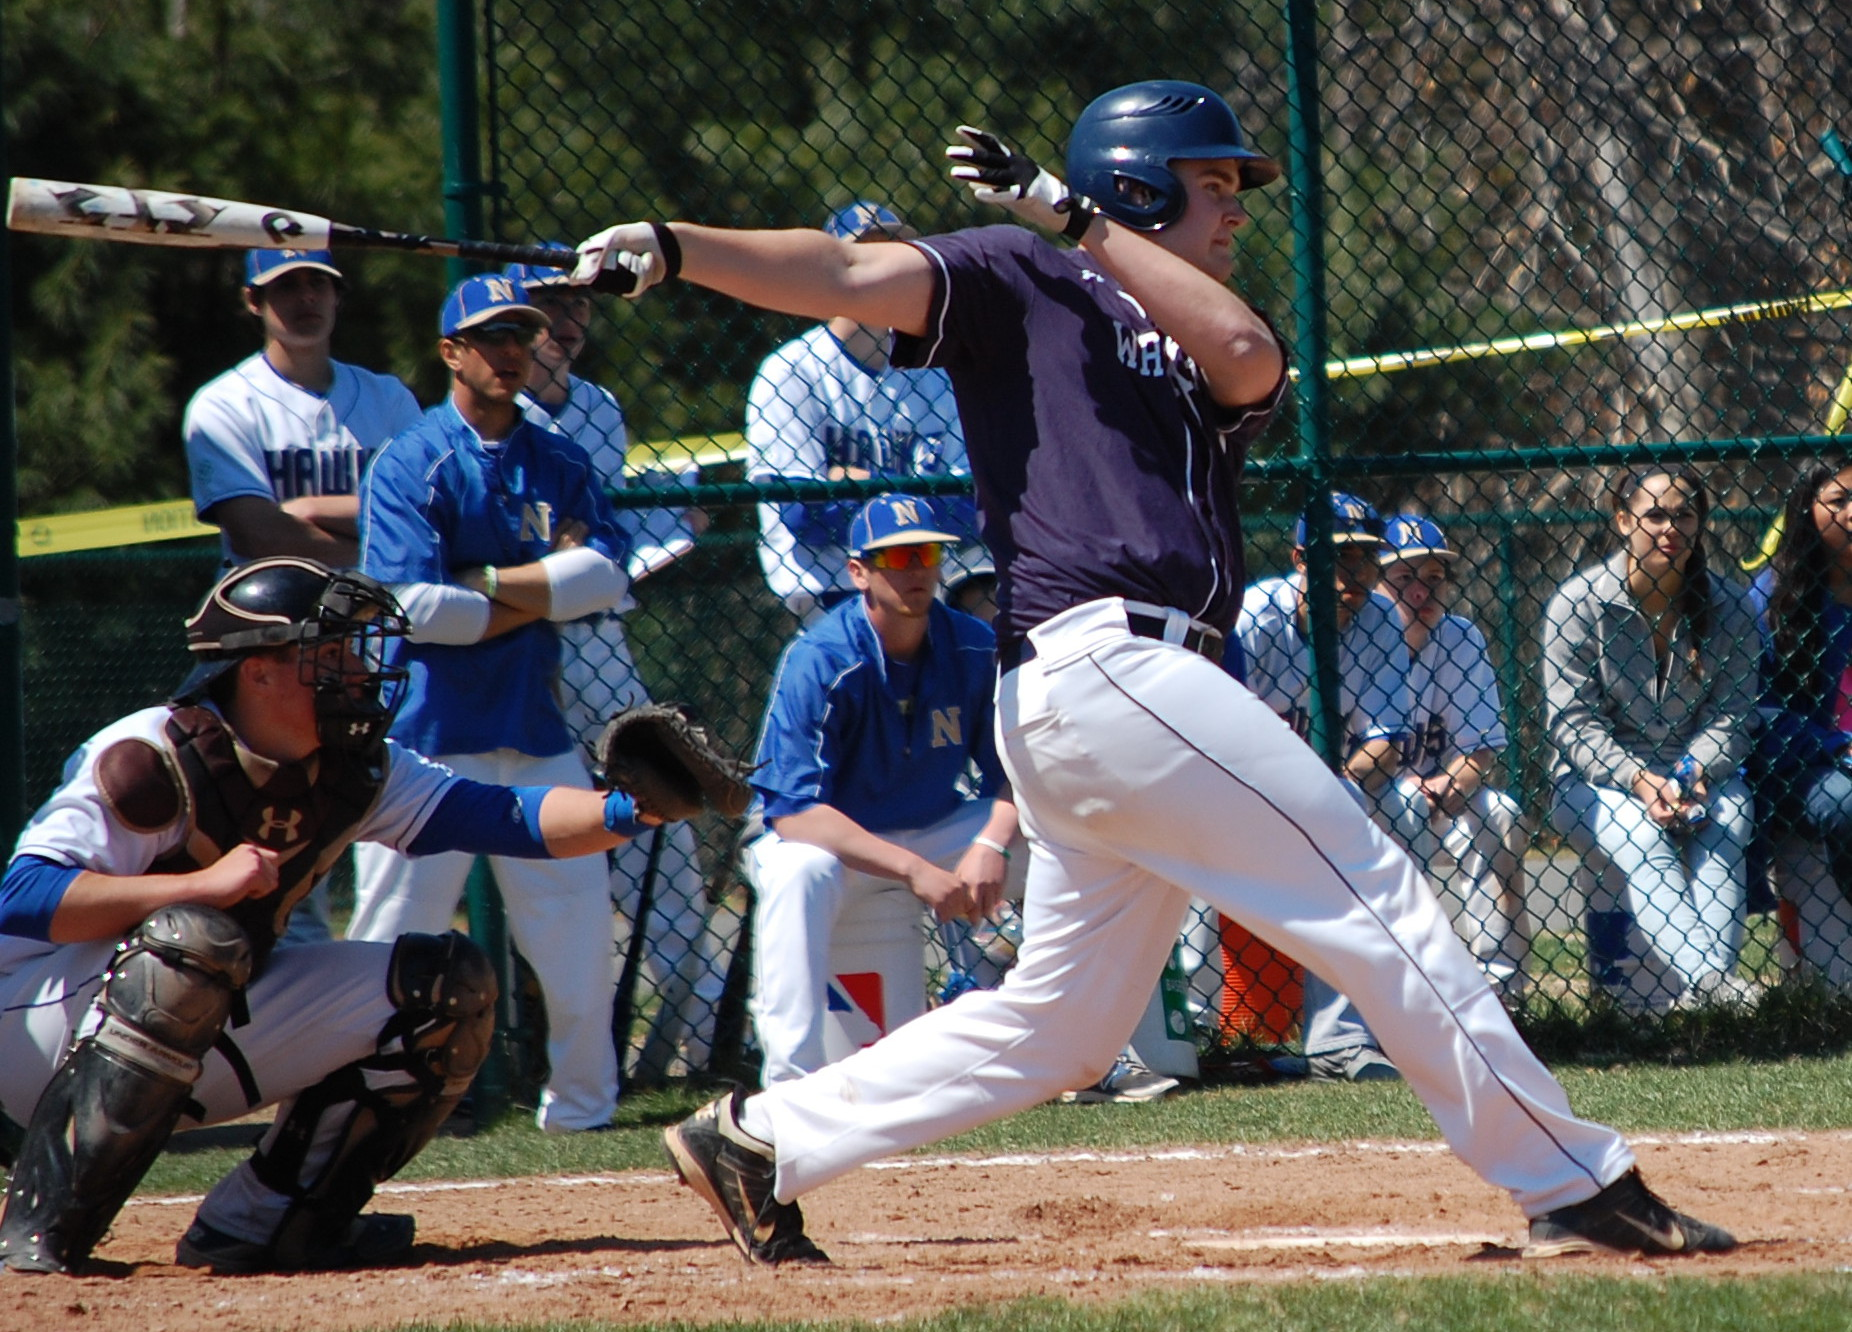 Bryan Porter crushes 2 run double in the 3rd inning Saturday!